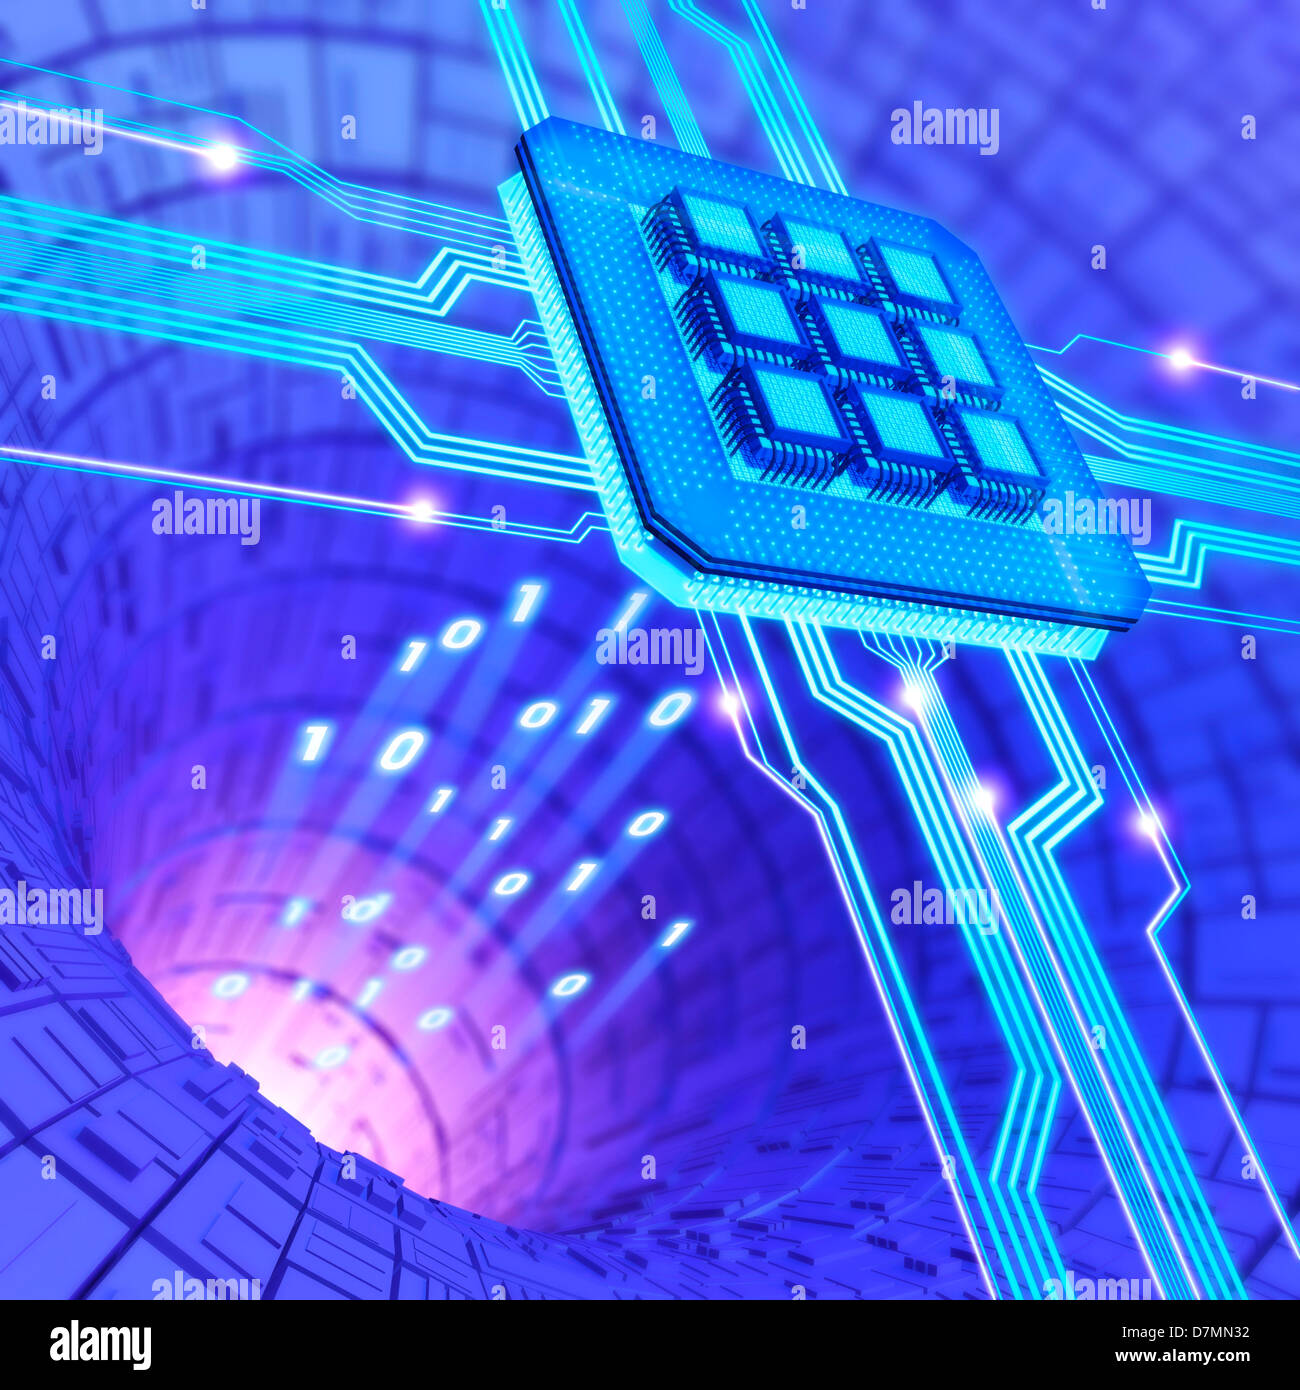 Futuristic computing technology, artwork - Stock Image